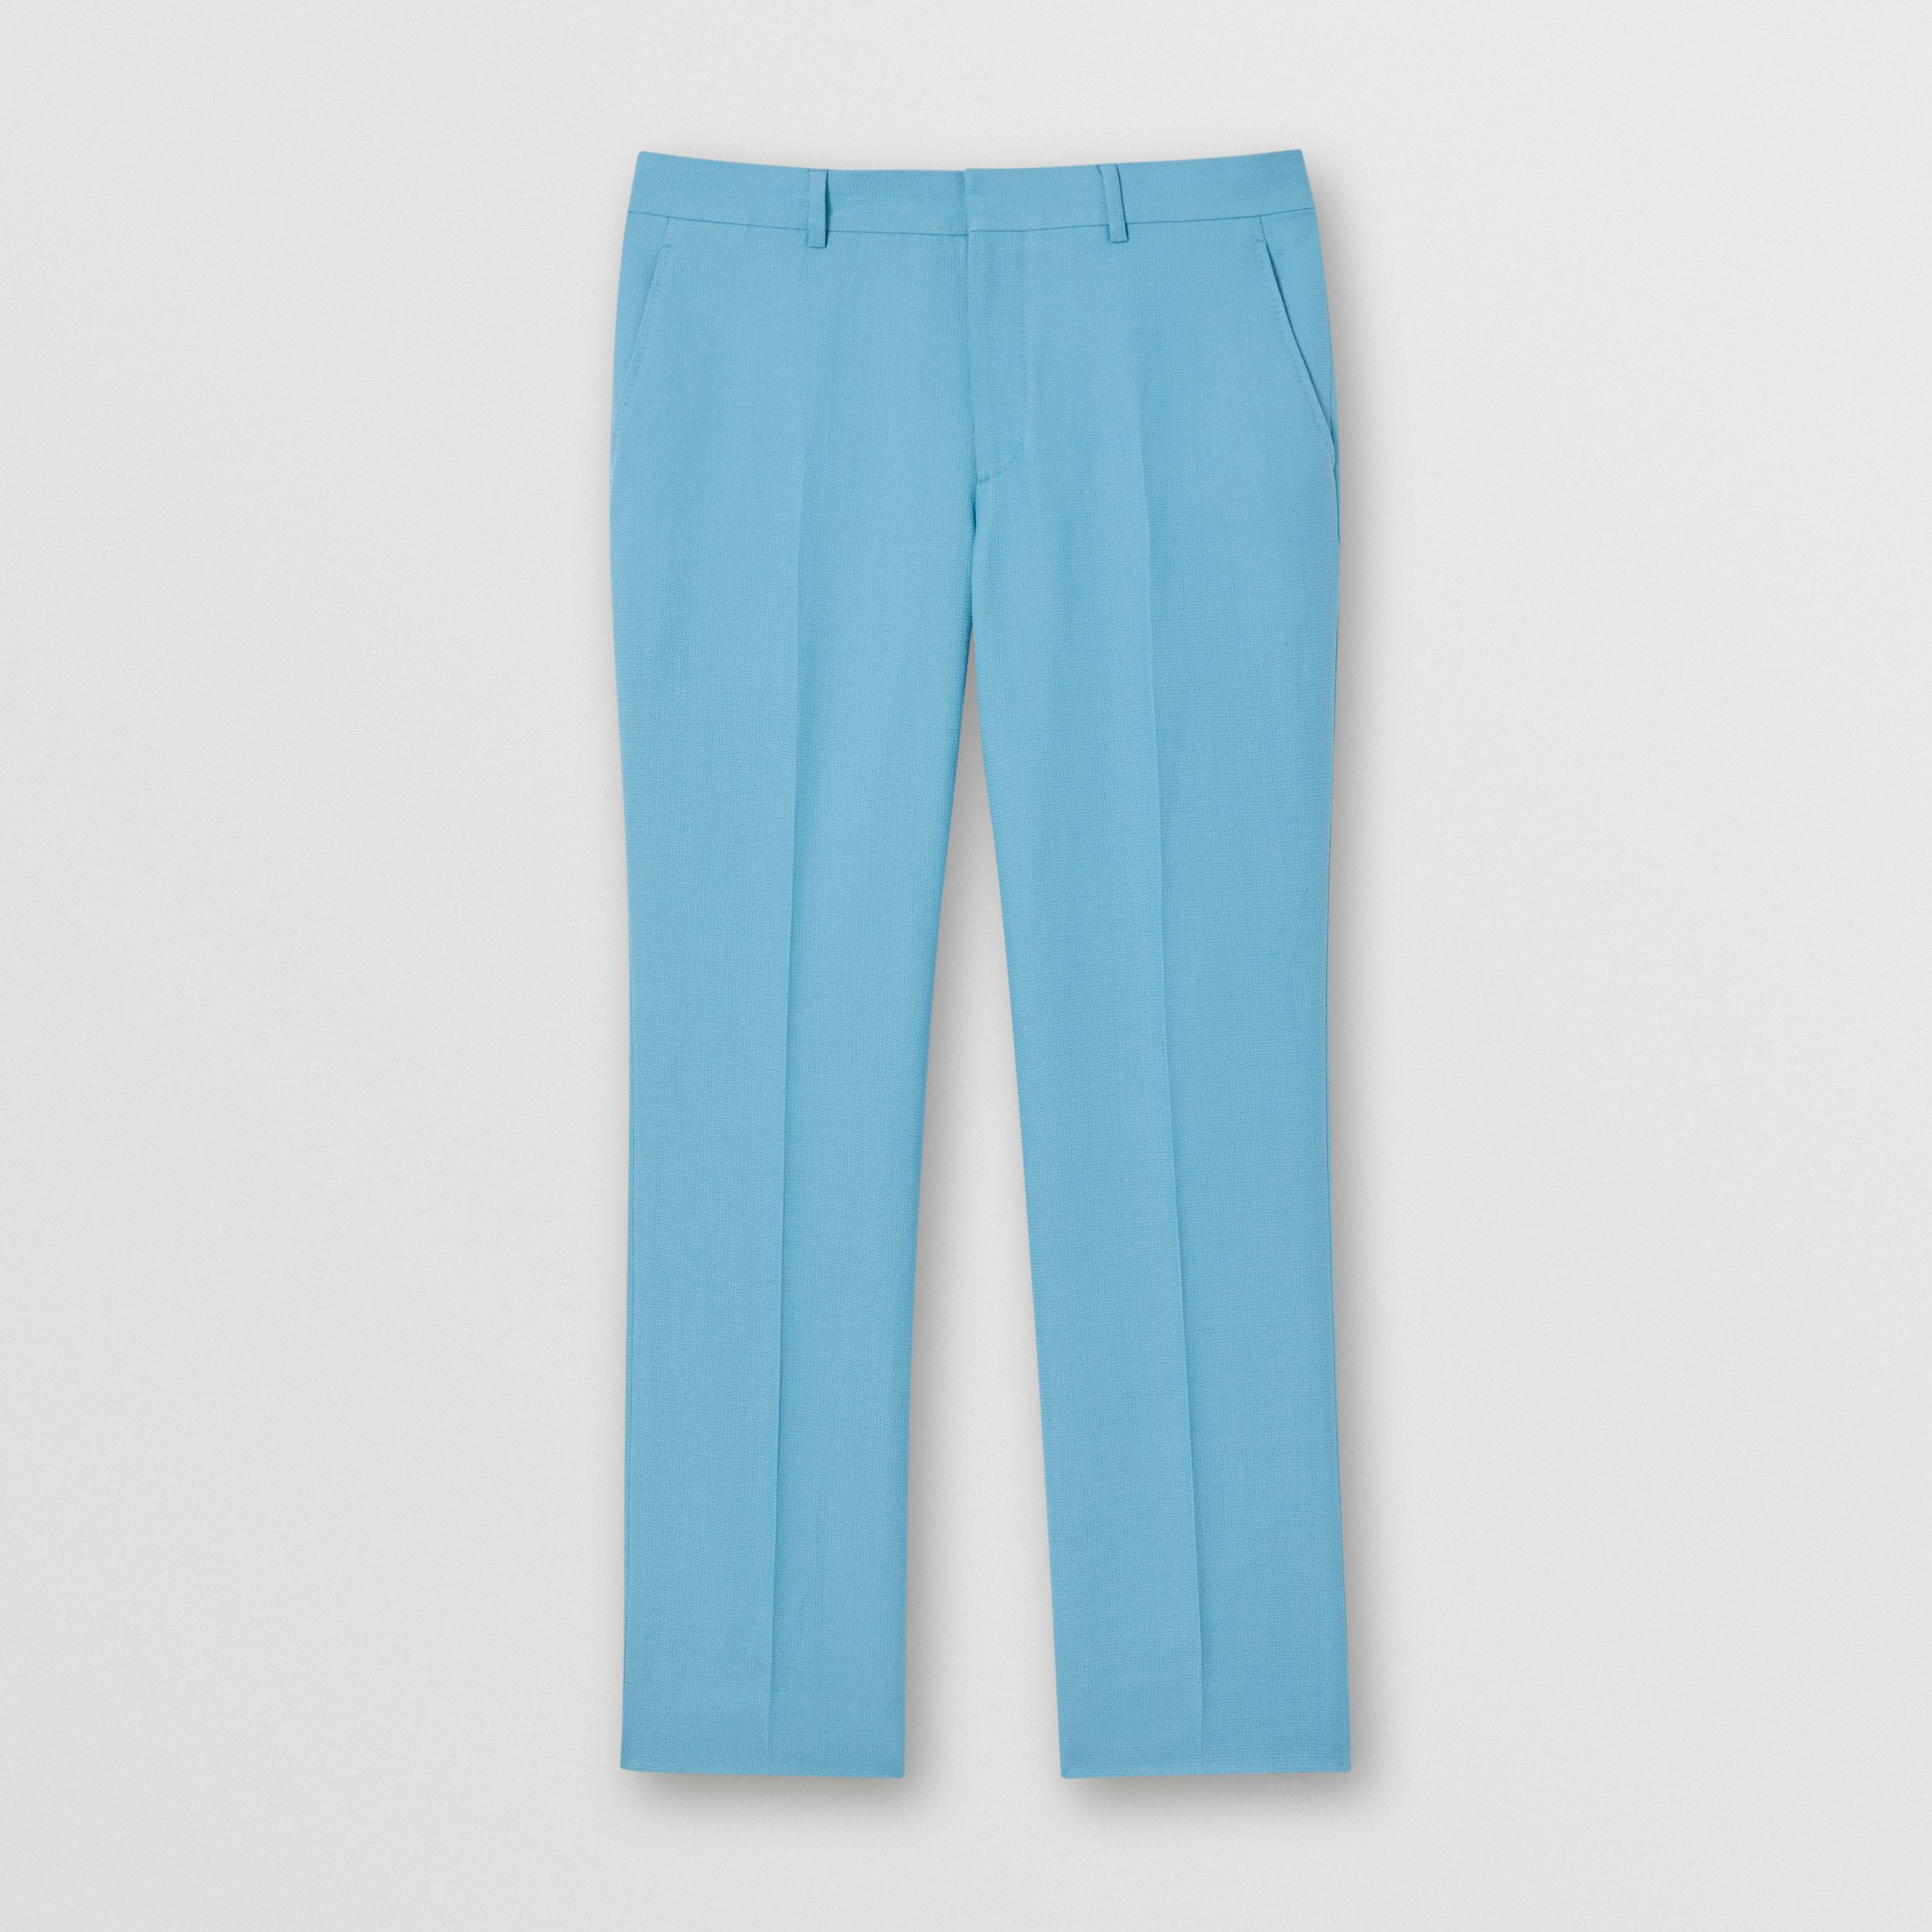 Wool Ramie Tailored Trousers in Blue Topaz - Men | Burberry - 4